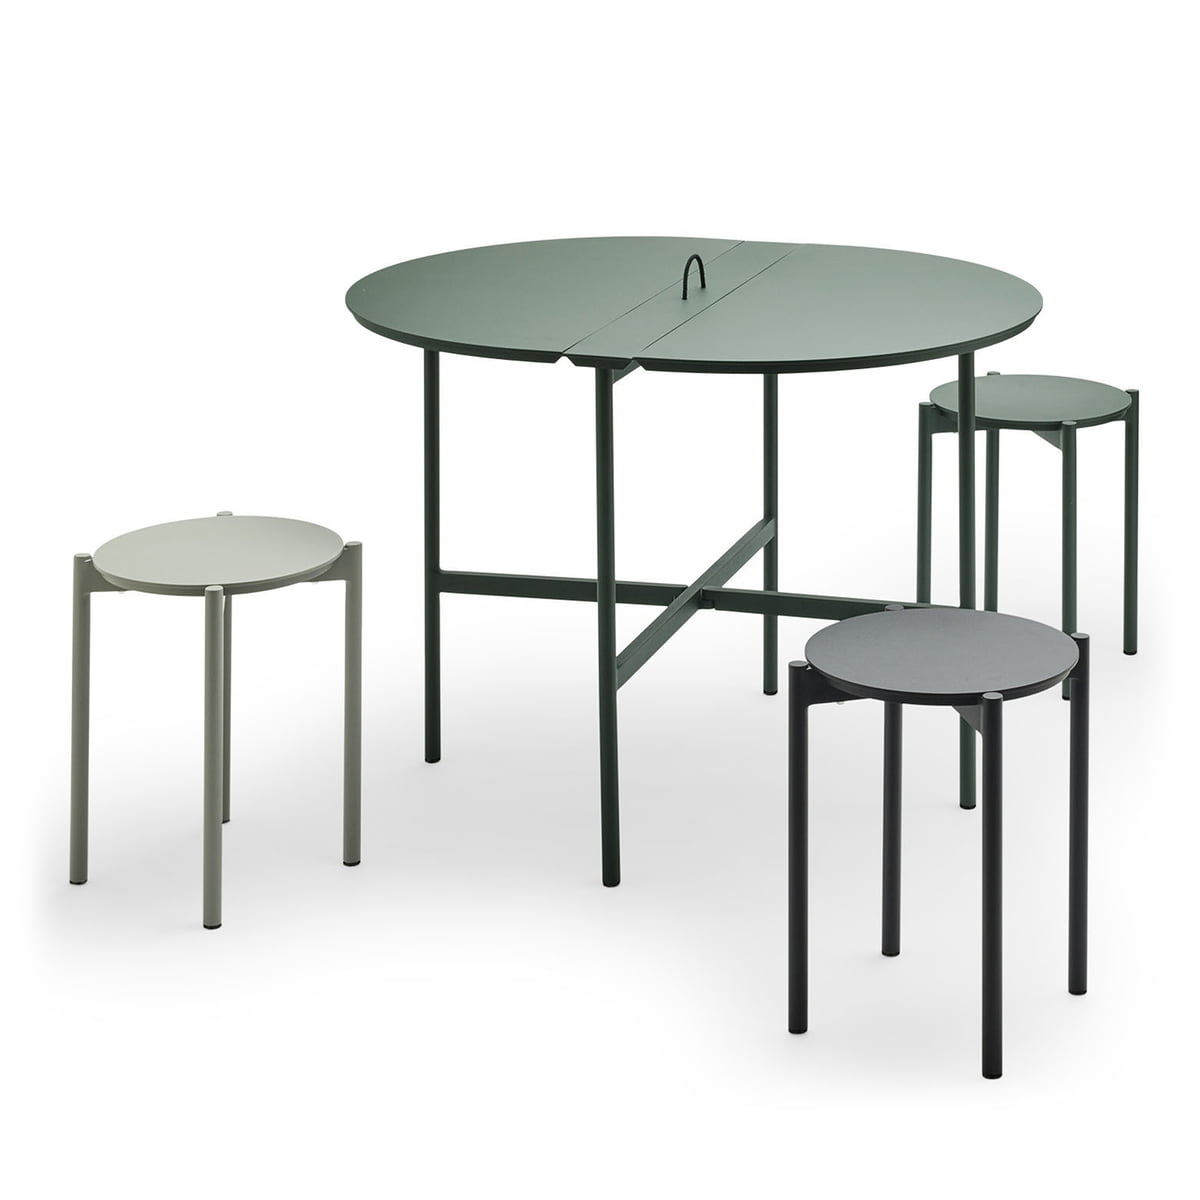 57d815777ac The Skagerak - Picnic Table 105 cm in Hunter Green with Picnic Stool in  Slate Grey